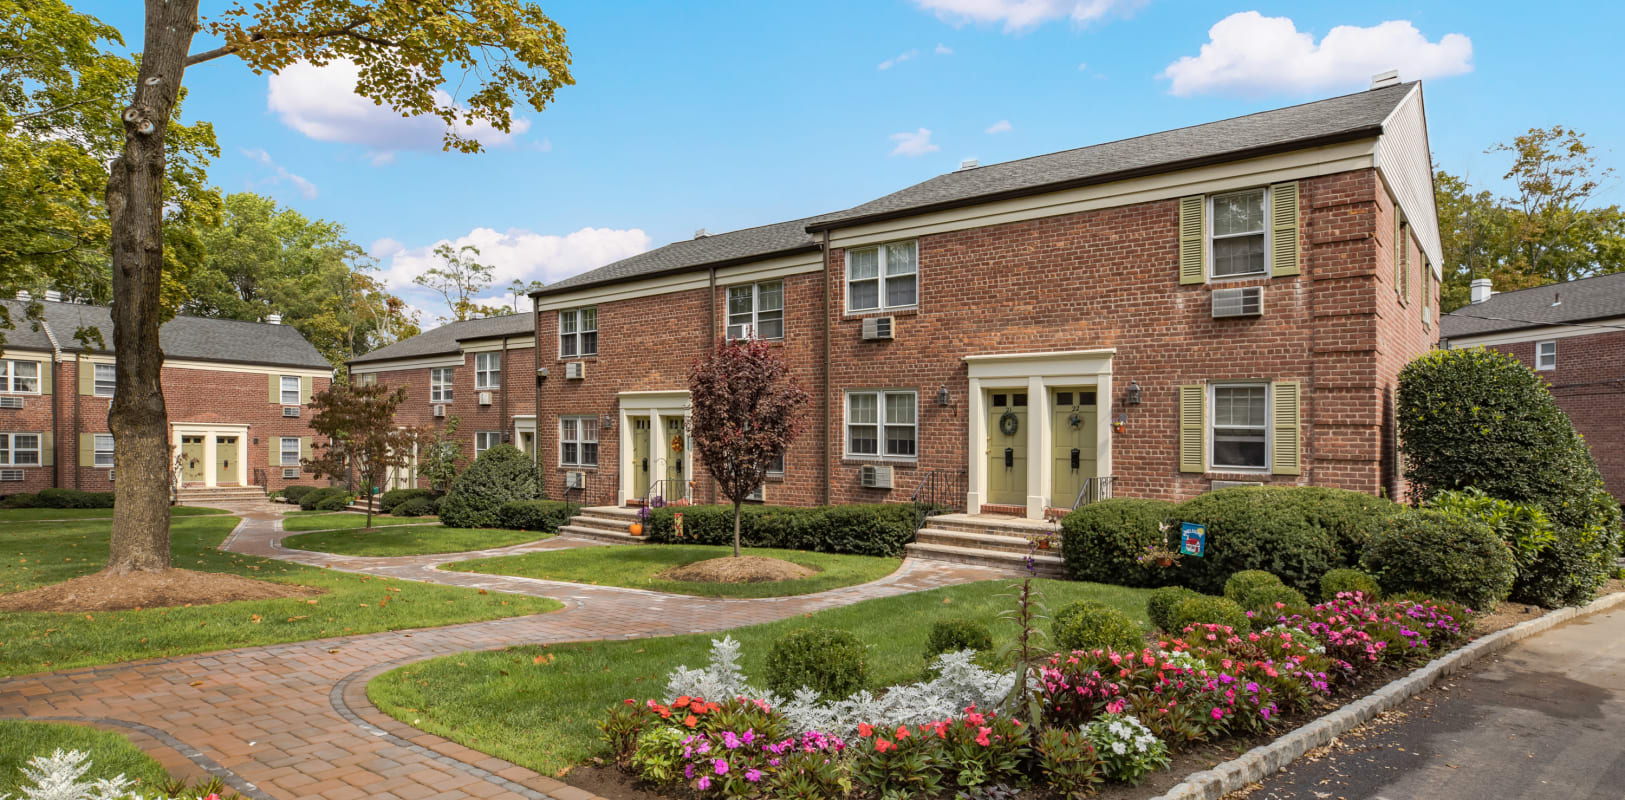 Historical looking brick buildings at General Wayne Townhomes and Ridgedale Gardens in Madison, New Jersey